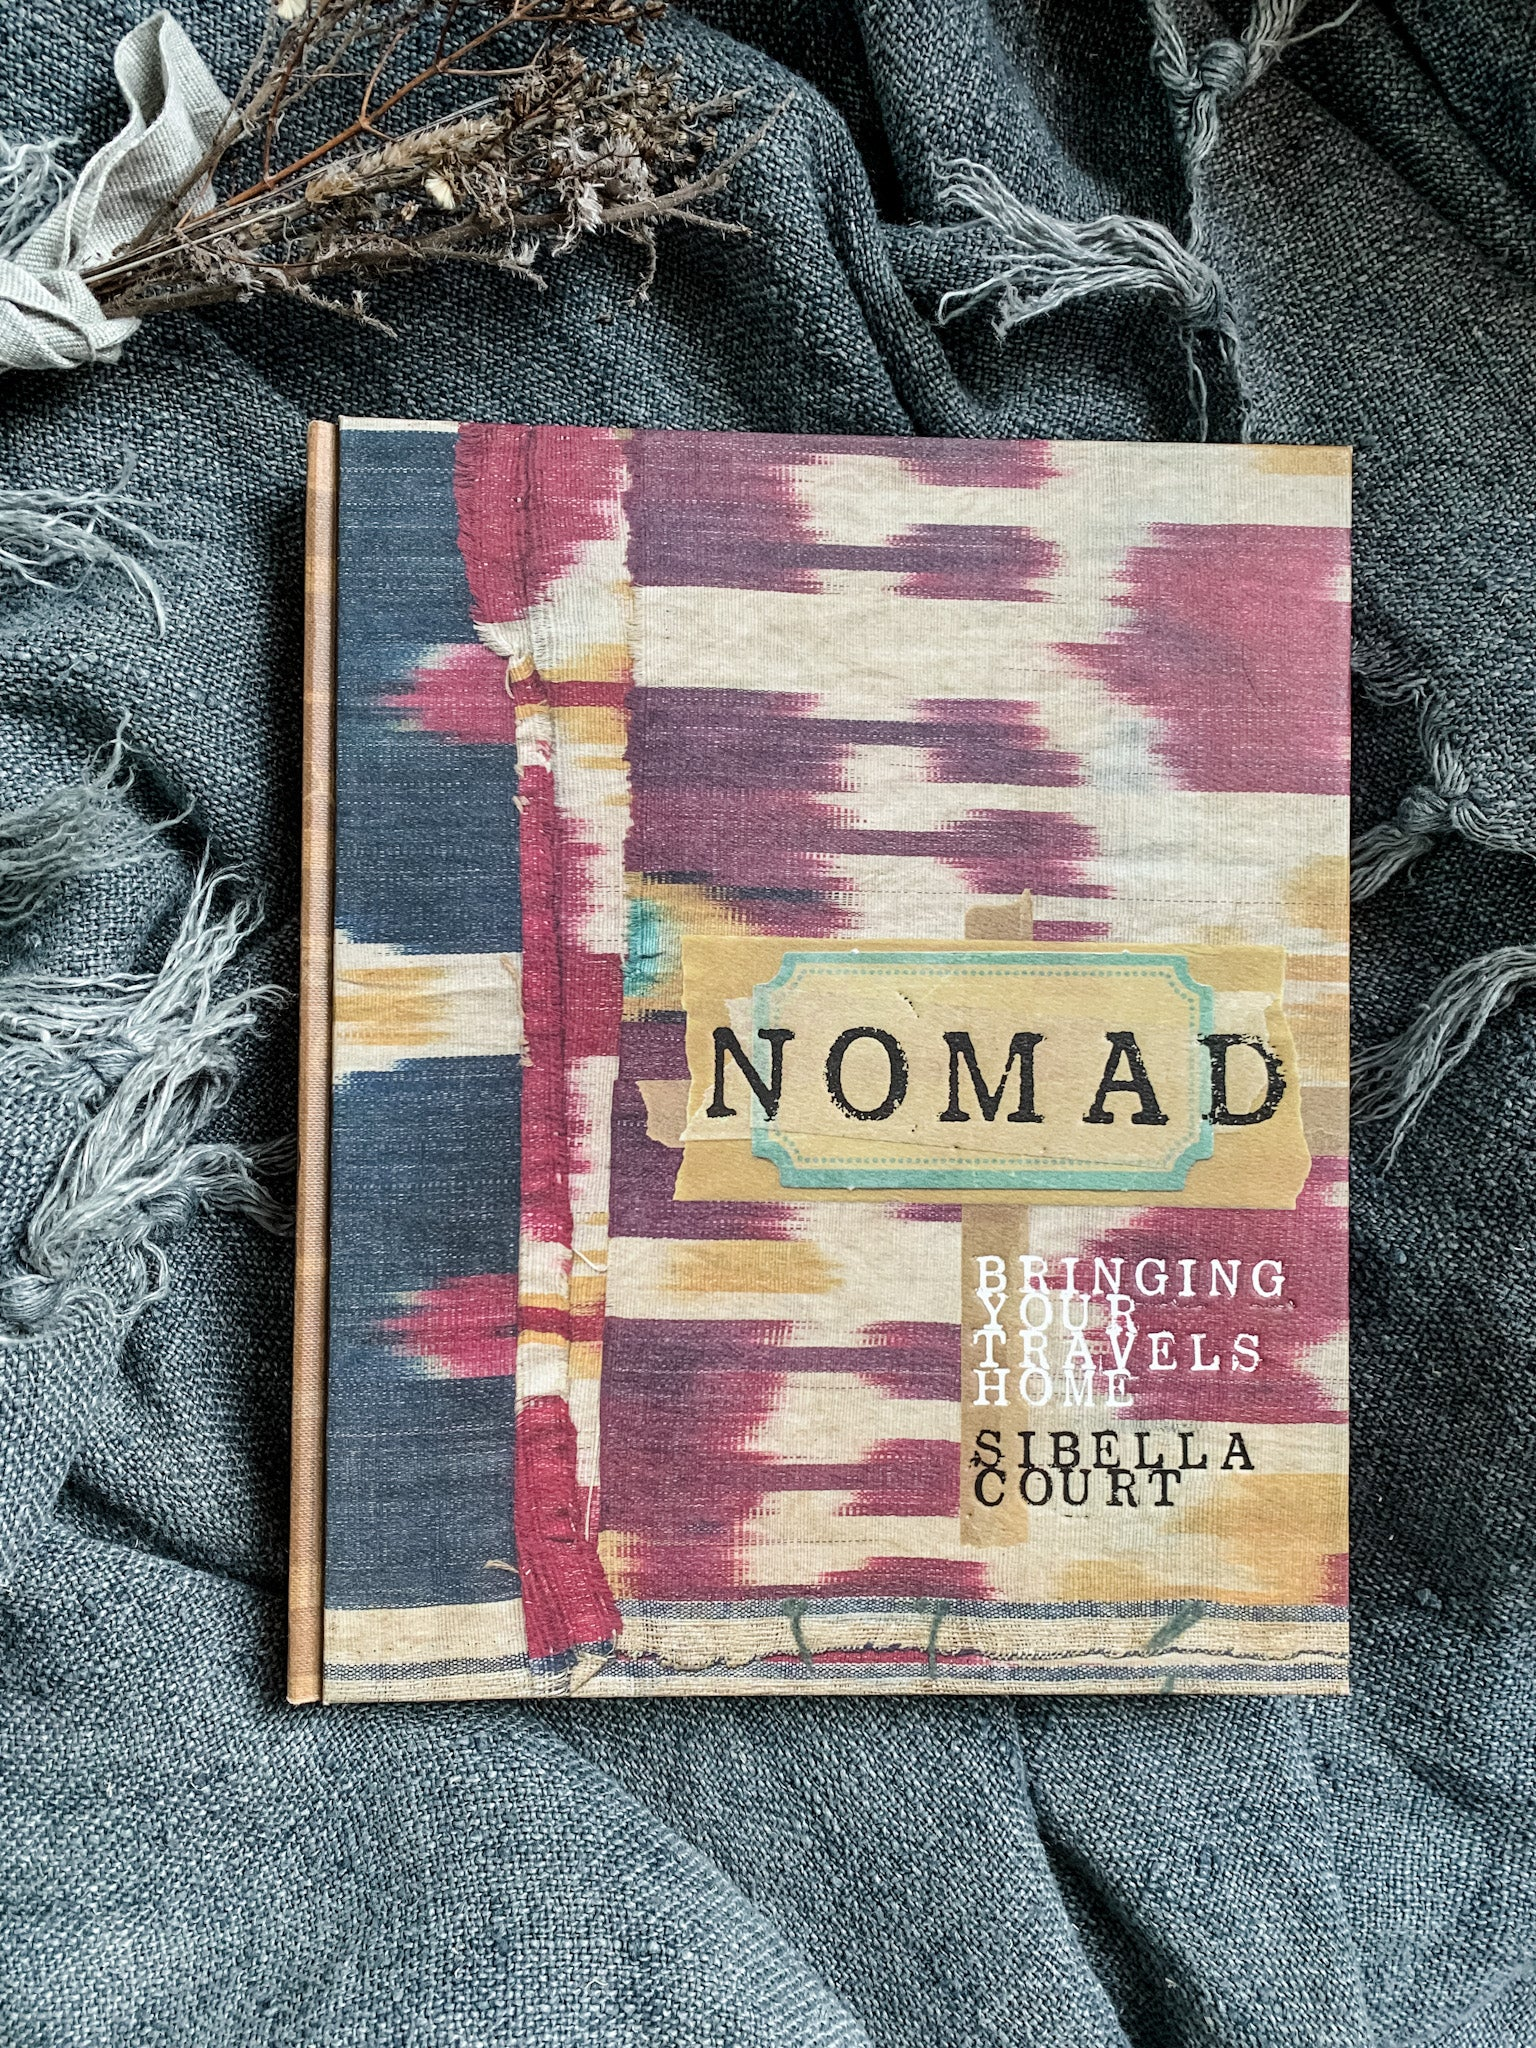 Nomad by Sibella Court